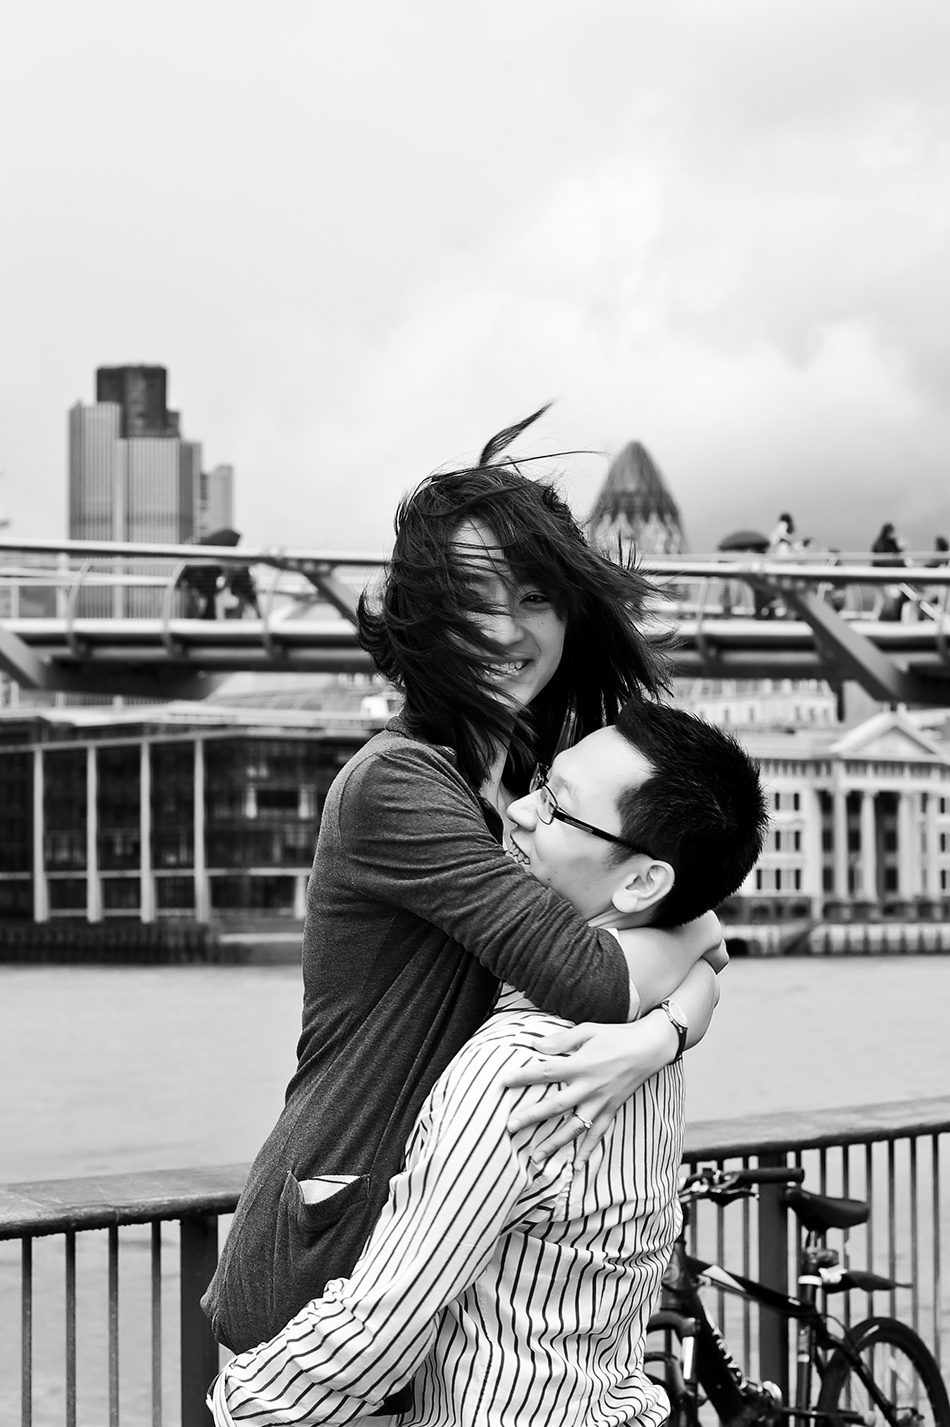 wedding engagement photography shoot city london richmond tate modern 0010